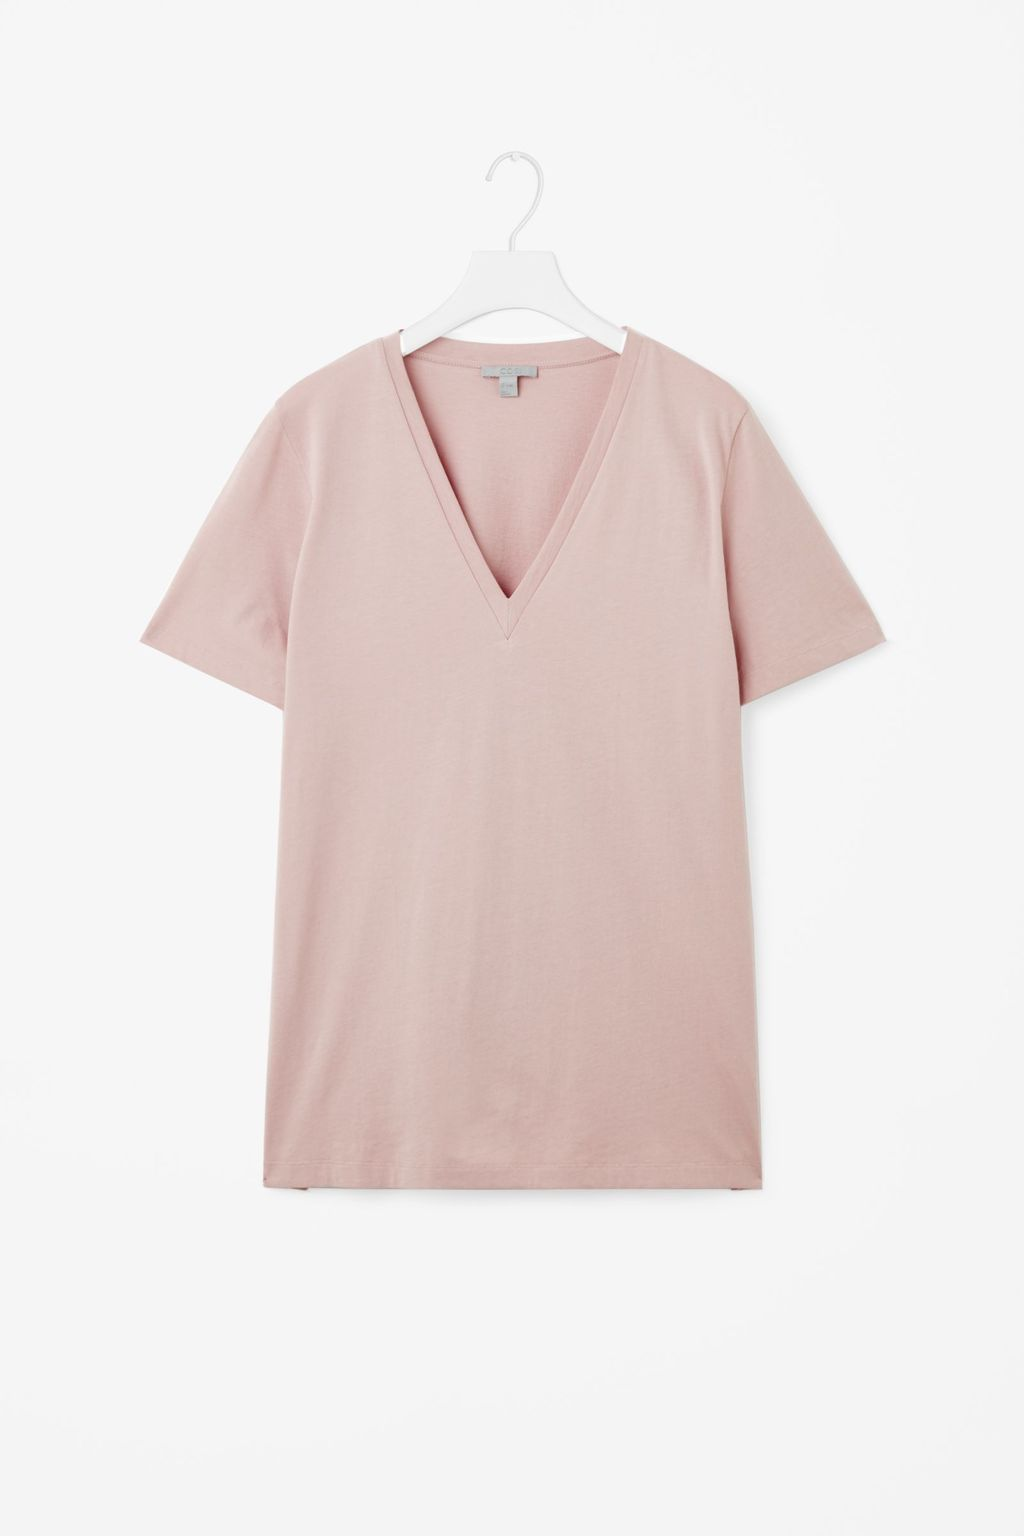 V Neck Cotton T Shirt - neckline: v-neck; pattern: plain; style: t-shirt; predominant colour: blush; occasions: casual; length: standard; fibres: cotton - 100%; fit: body skimming; sleeve length: short sleeve; sleeve style: standard; pattern type: fabric; texture group: jersey - stretchy/drapey; season: s/s 2016; wardrobe: basic